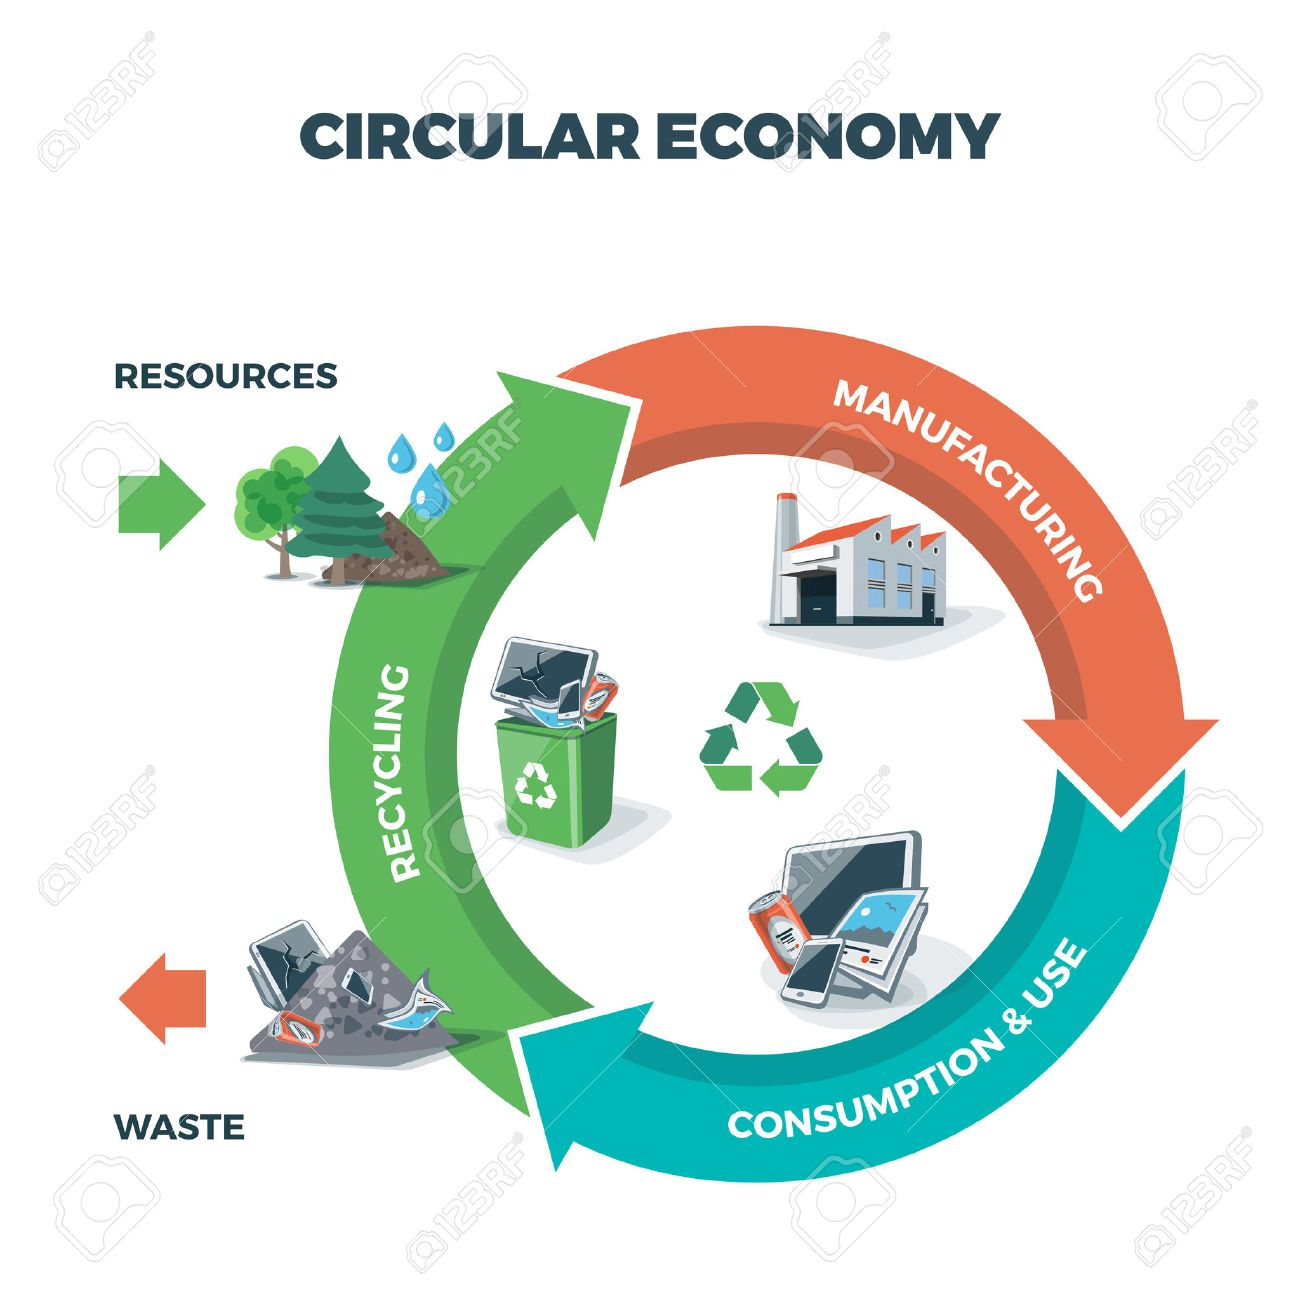 Vector illustration of circular economy showing product and material flow on white background with arrows. Product life cycle. Natural resources are taken to manufacturing. After usage product is recycled or dumped. Waste recycling management concept. - 53172701